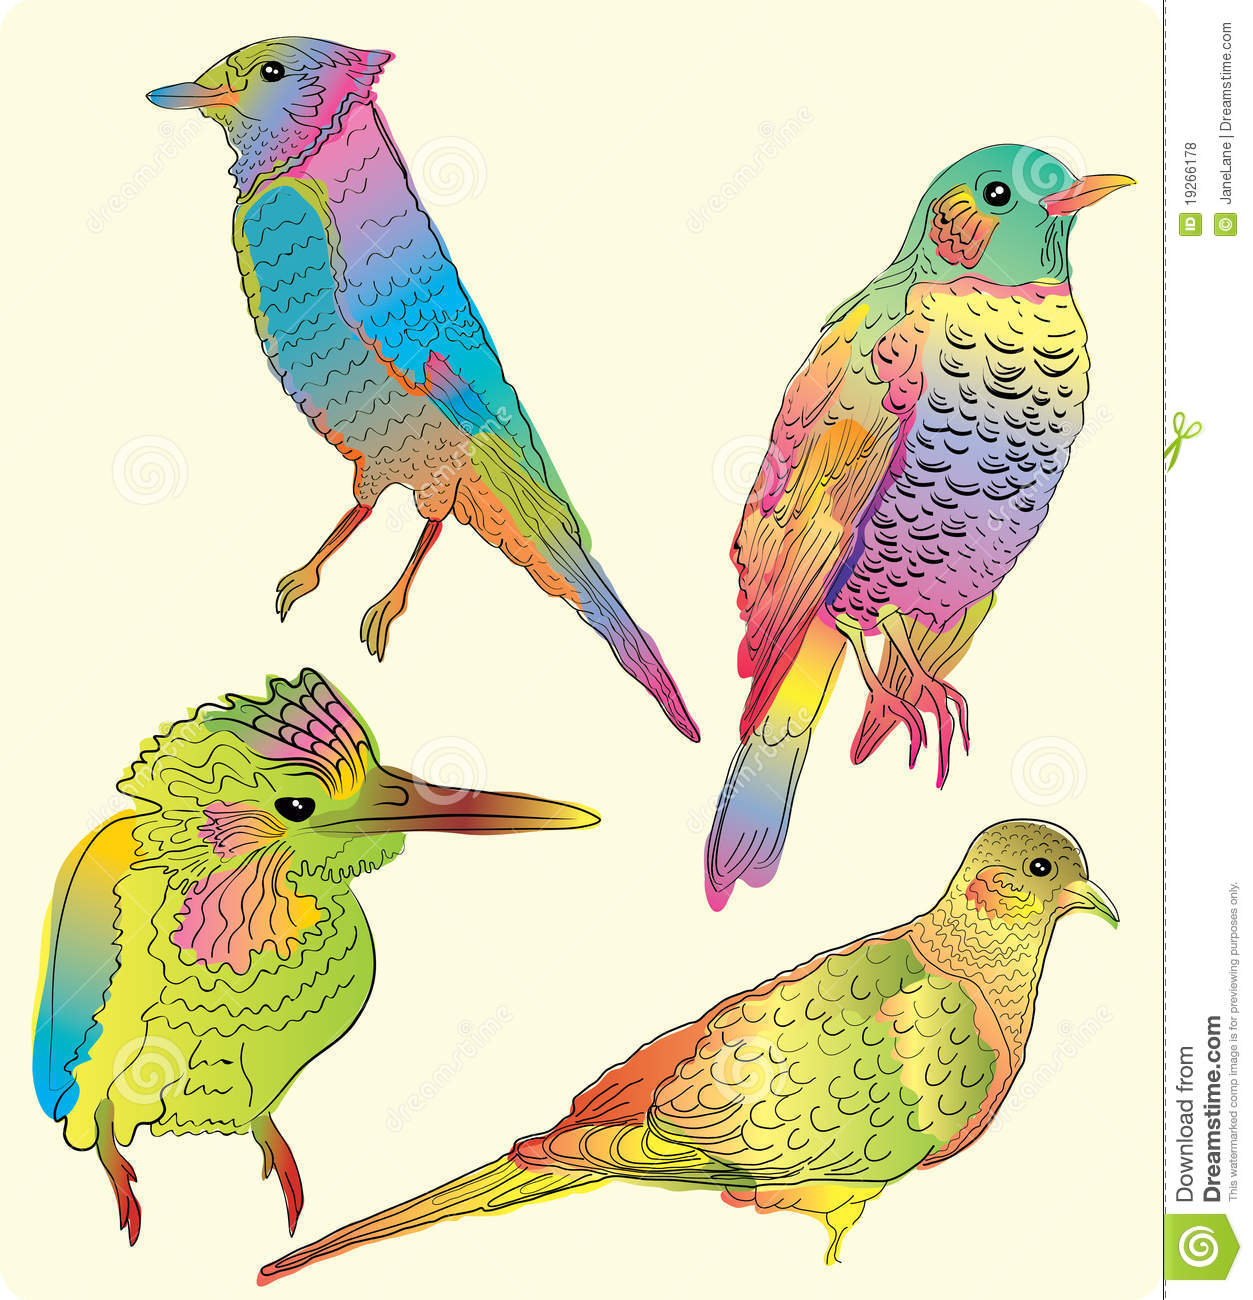 Four beautiful birds hand drawing illustration